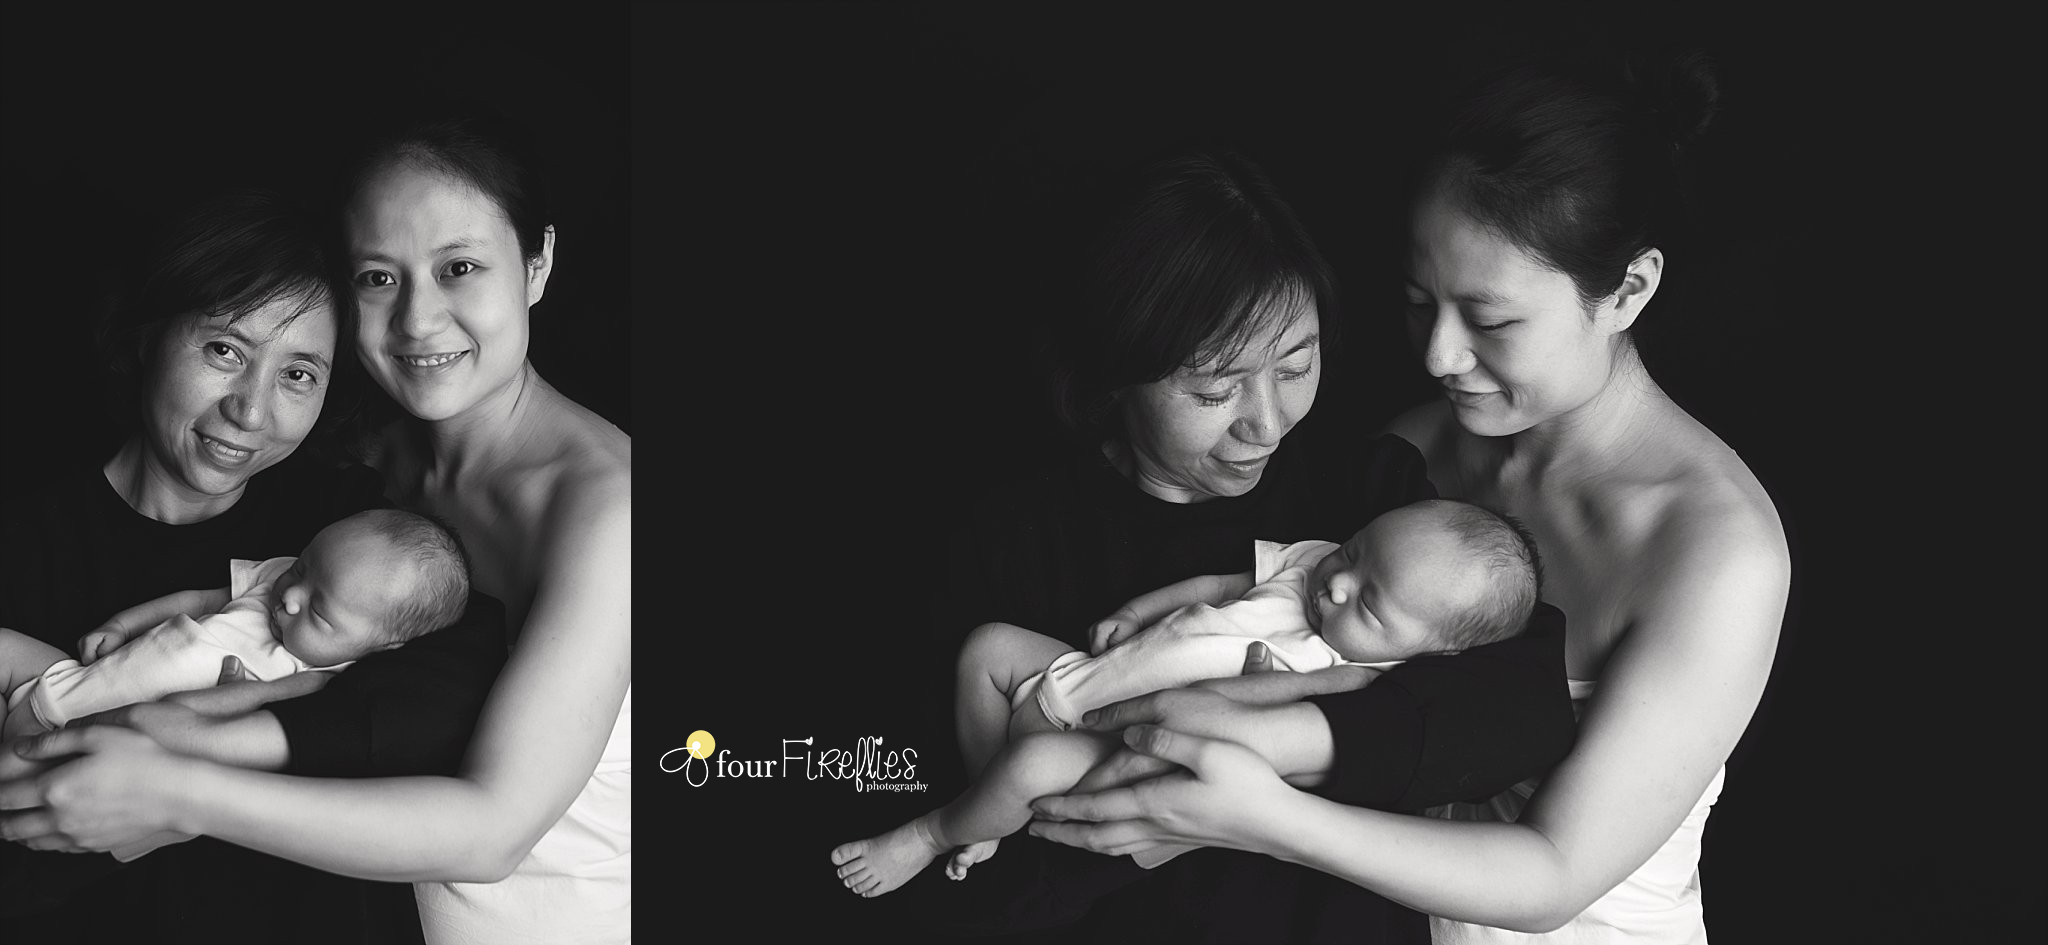 st-louis-newborn-photographer-baby-with-mom-and-grandma-in-black-and-white.jpg